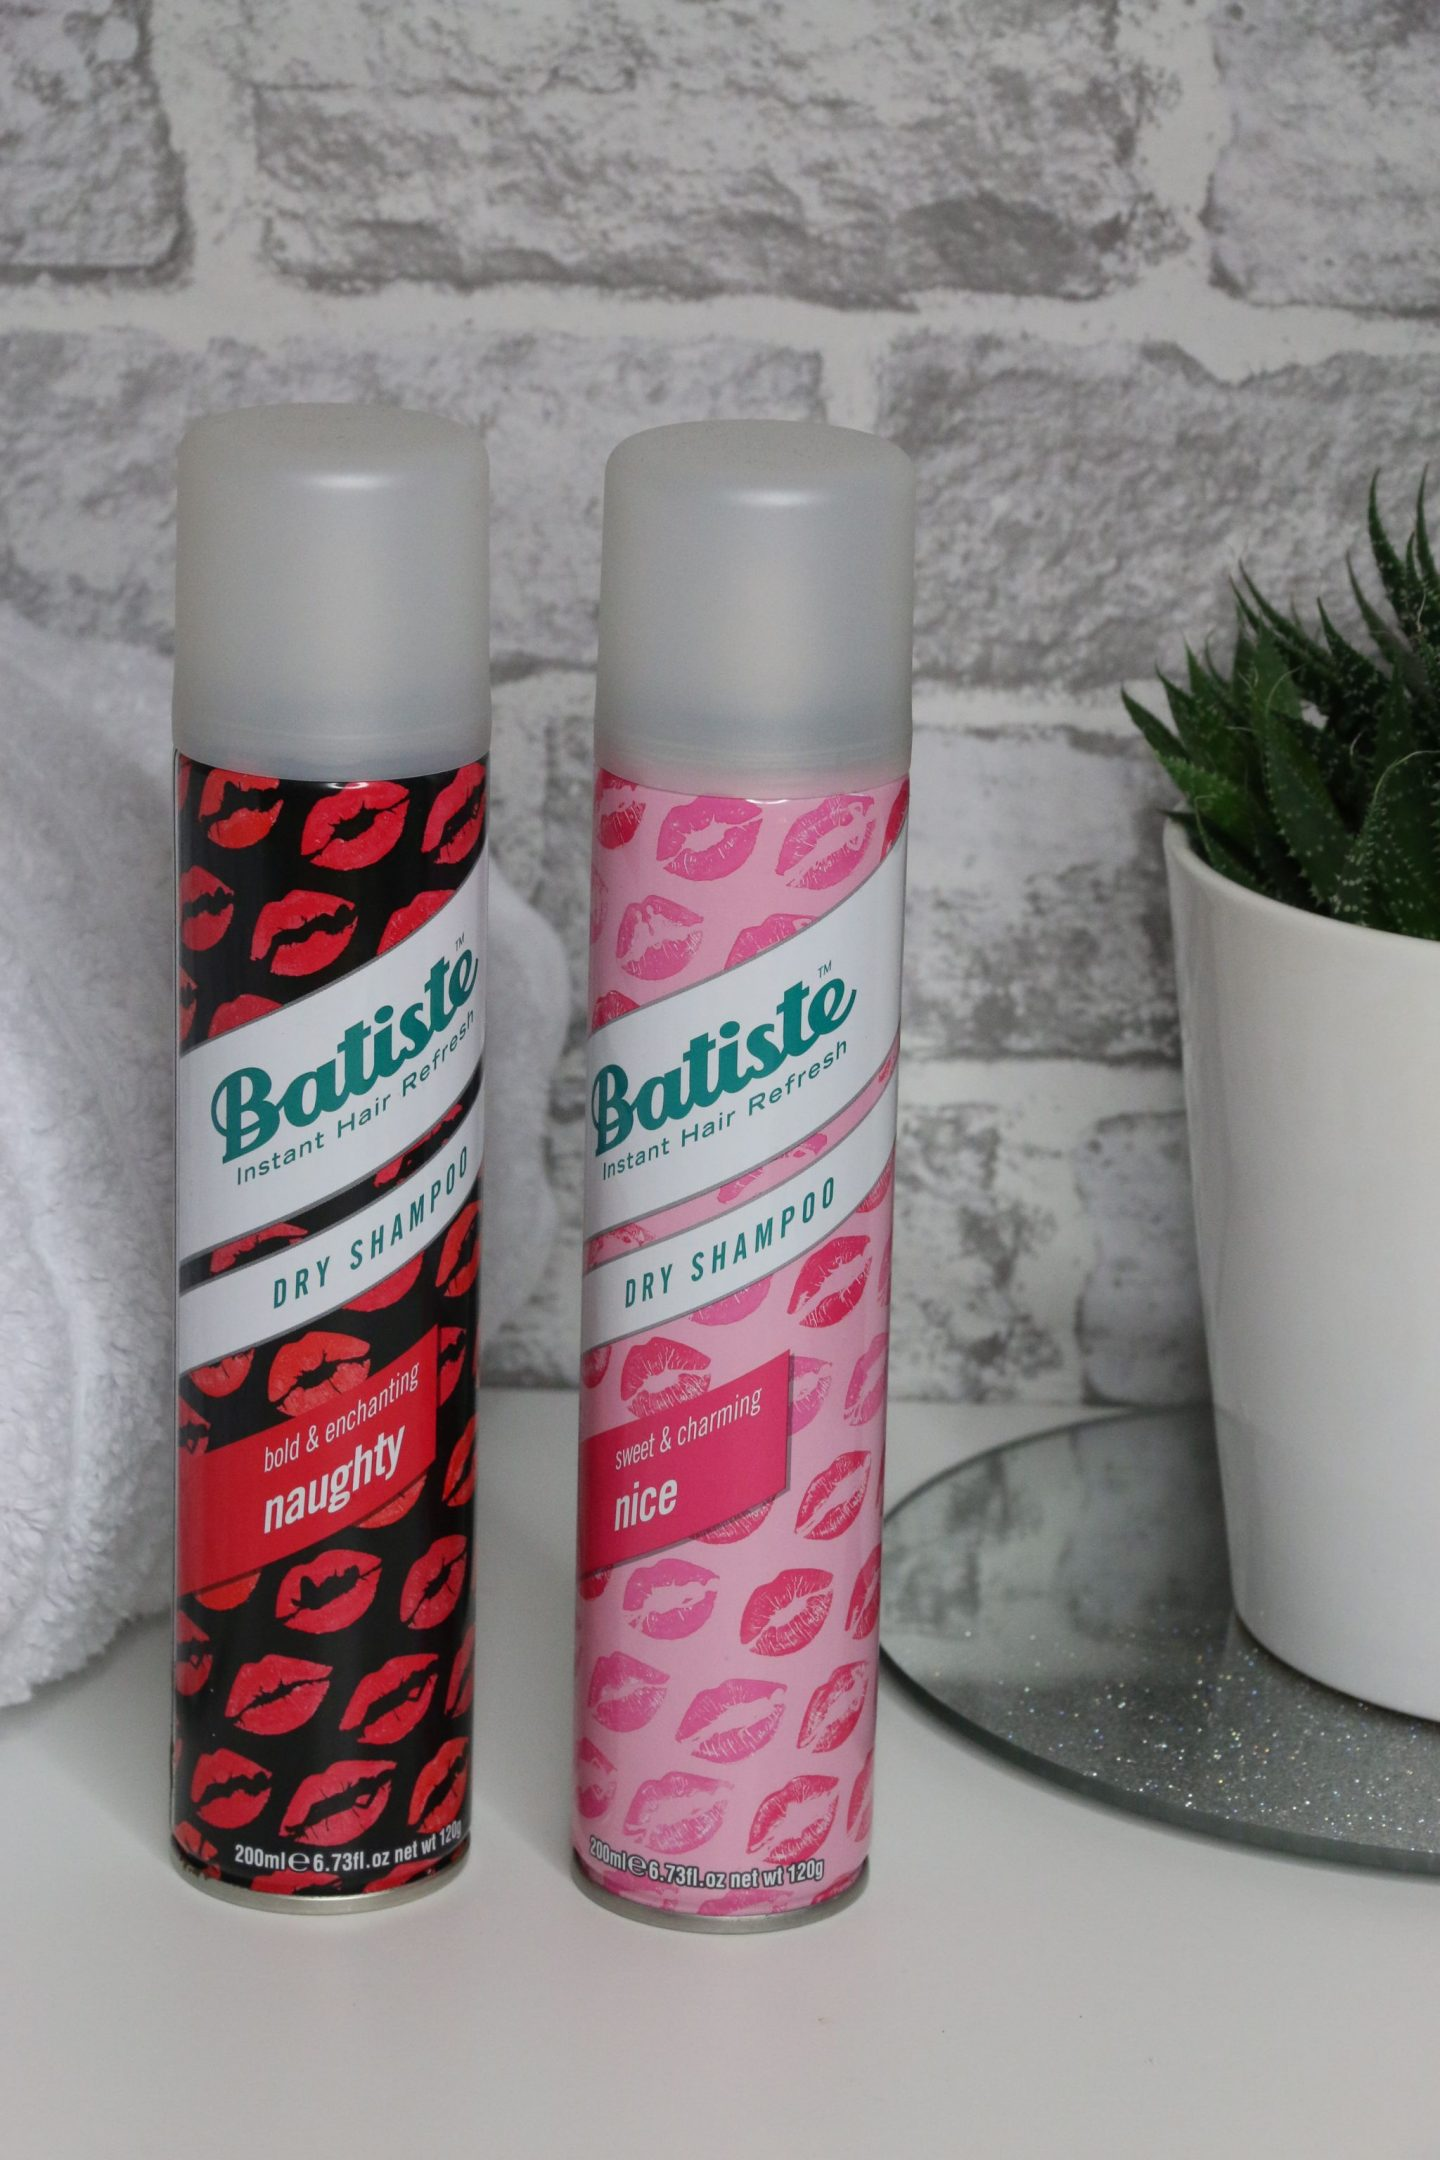 Batiste Dry Shampoo Review WhatLauraLoves